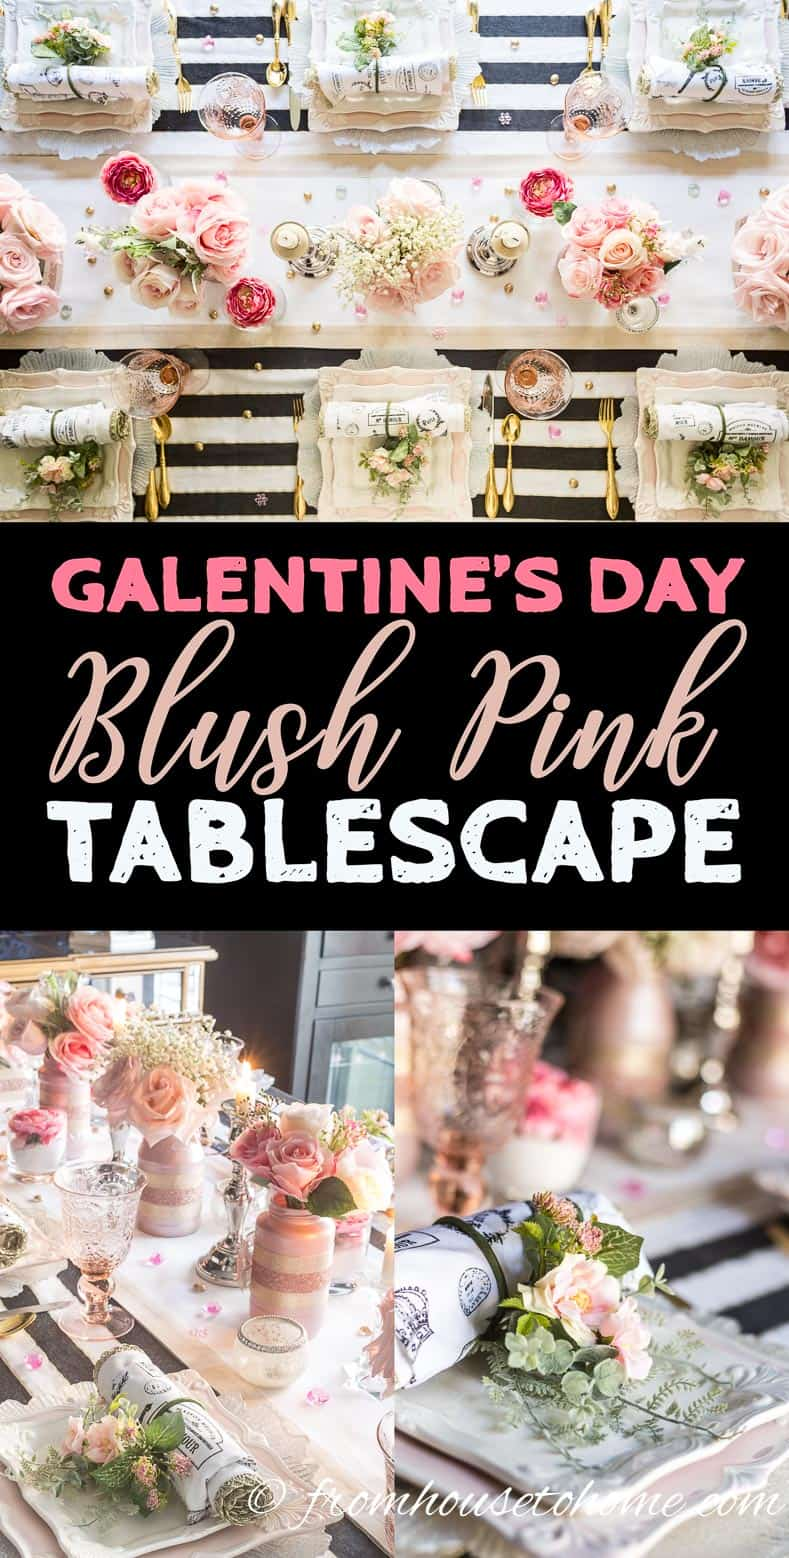 Galentine's Day romantic blush pink tablescape